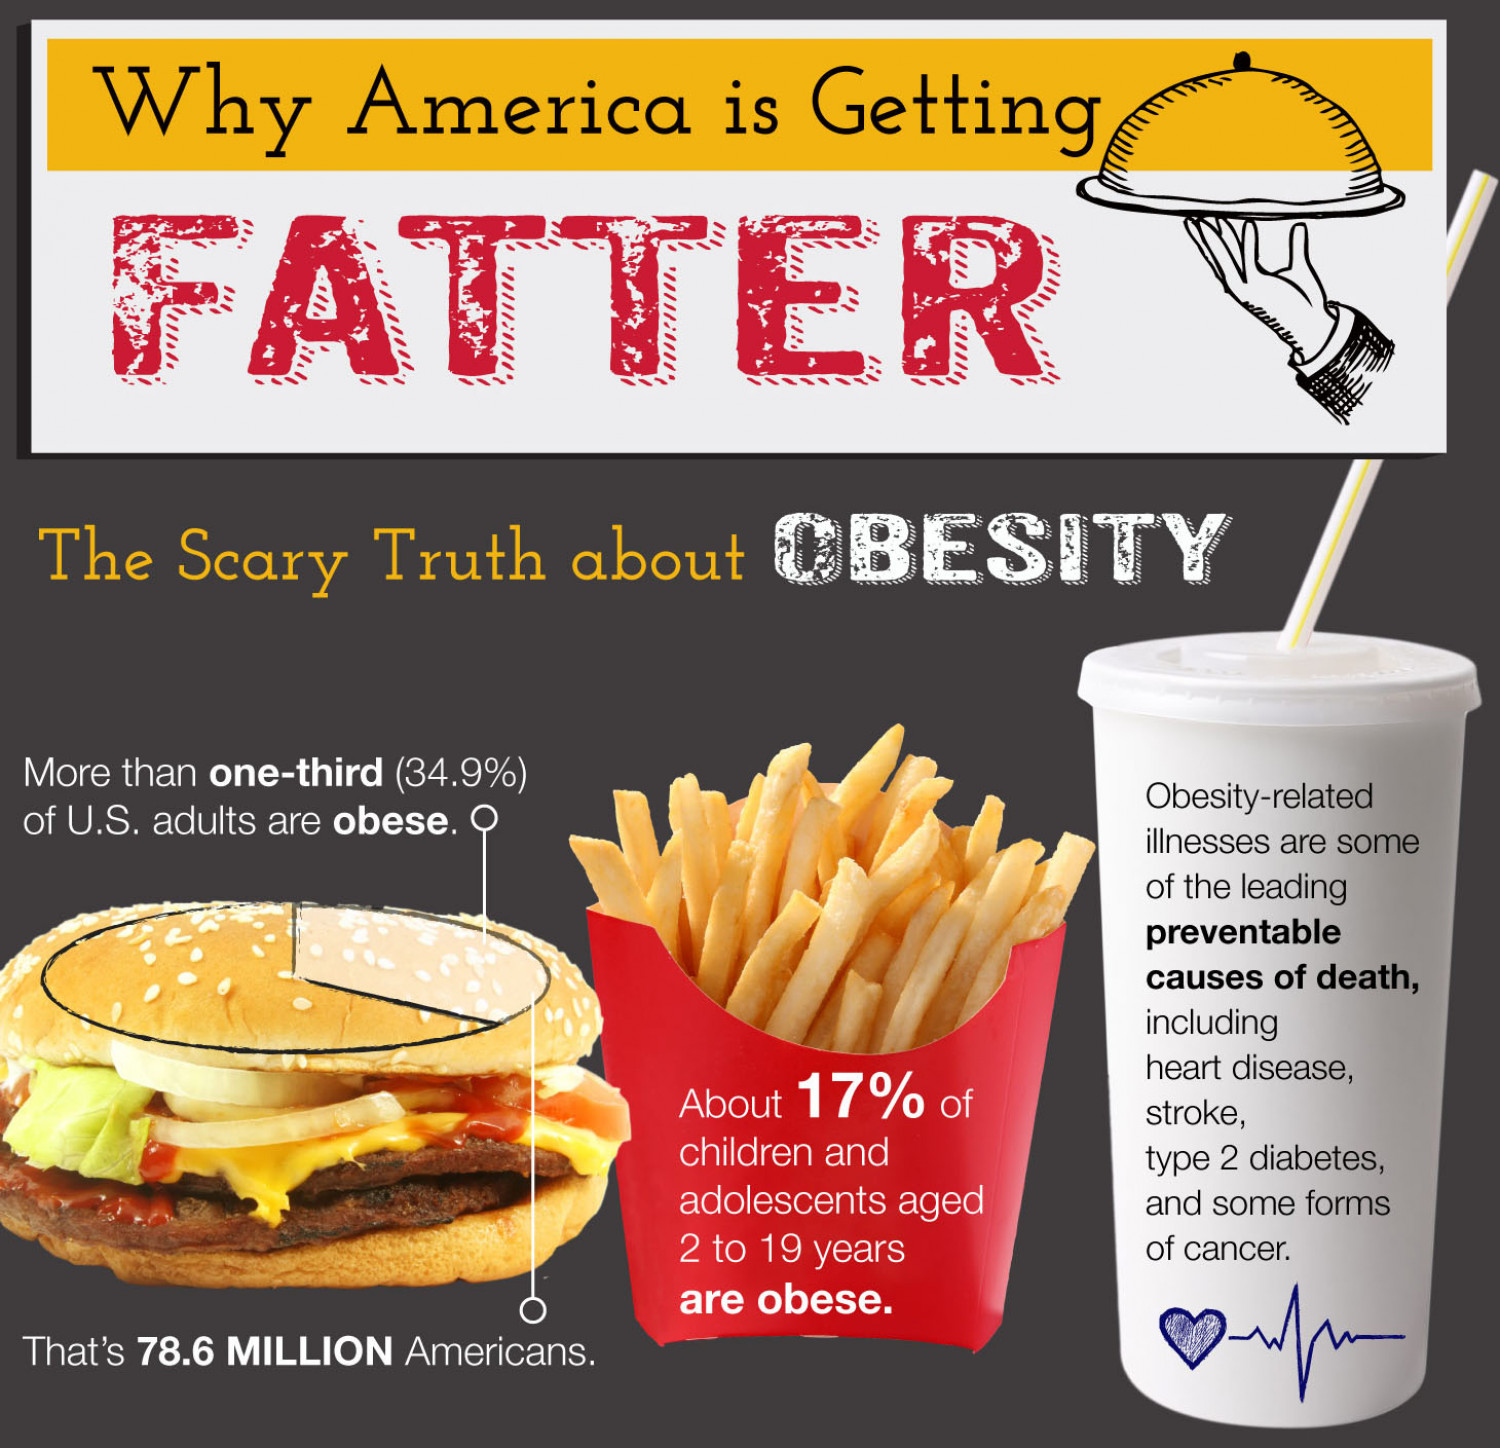 WHY AMERICA IS GETTING FATTER: THE SCARY TRUTH ABOUT OBESITY Infographic